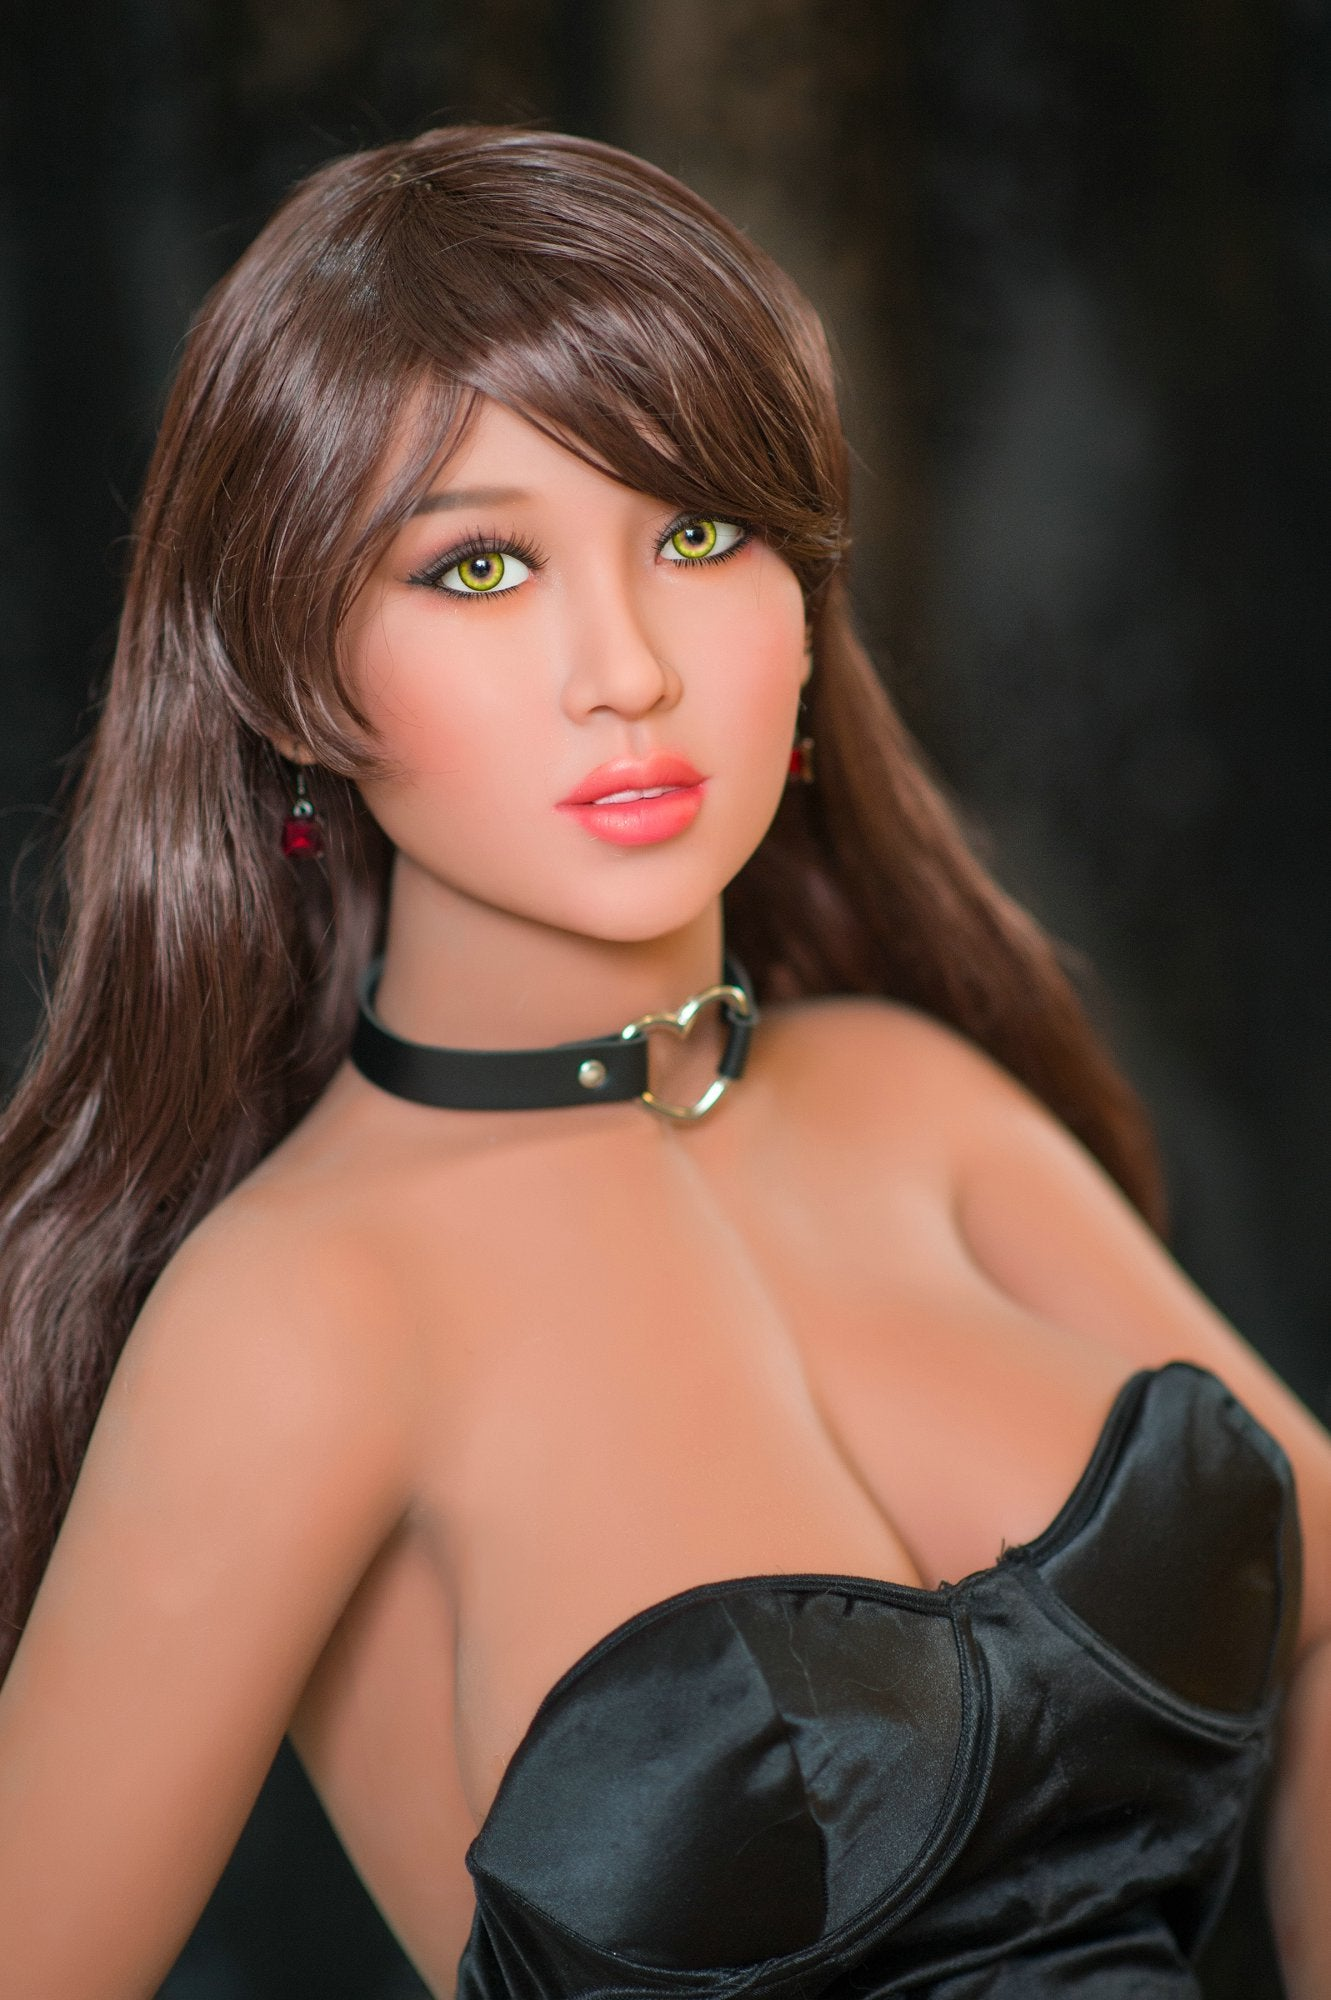 Flat Chested Teen Sex Dolls